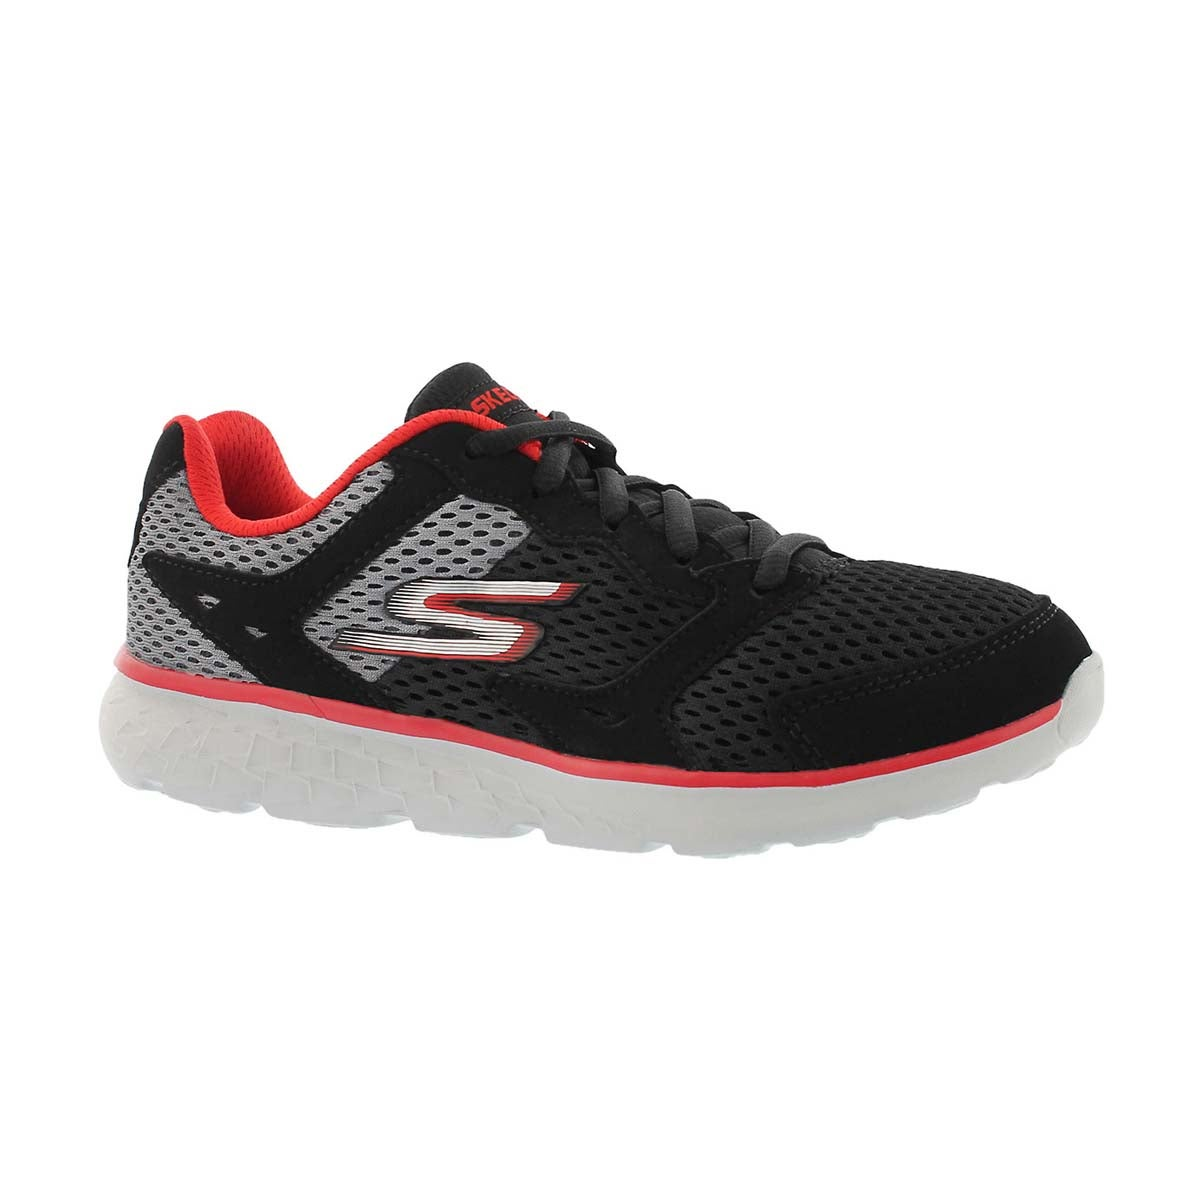 Boys' GOrun 400 black/red lace up sneakers